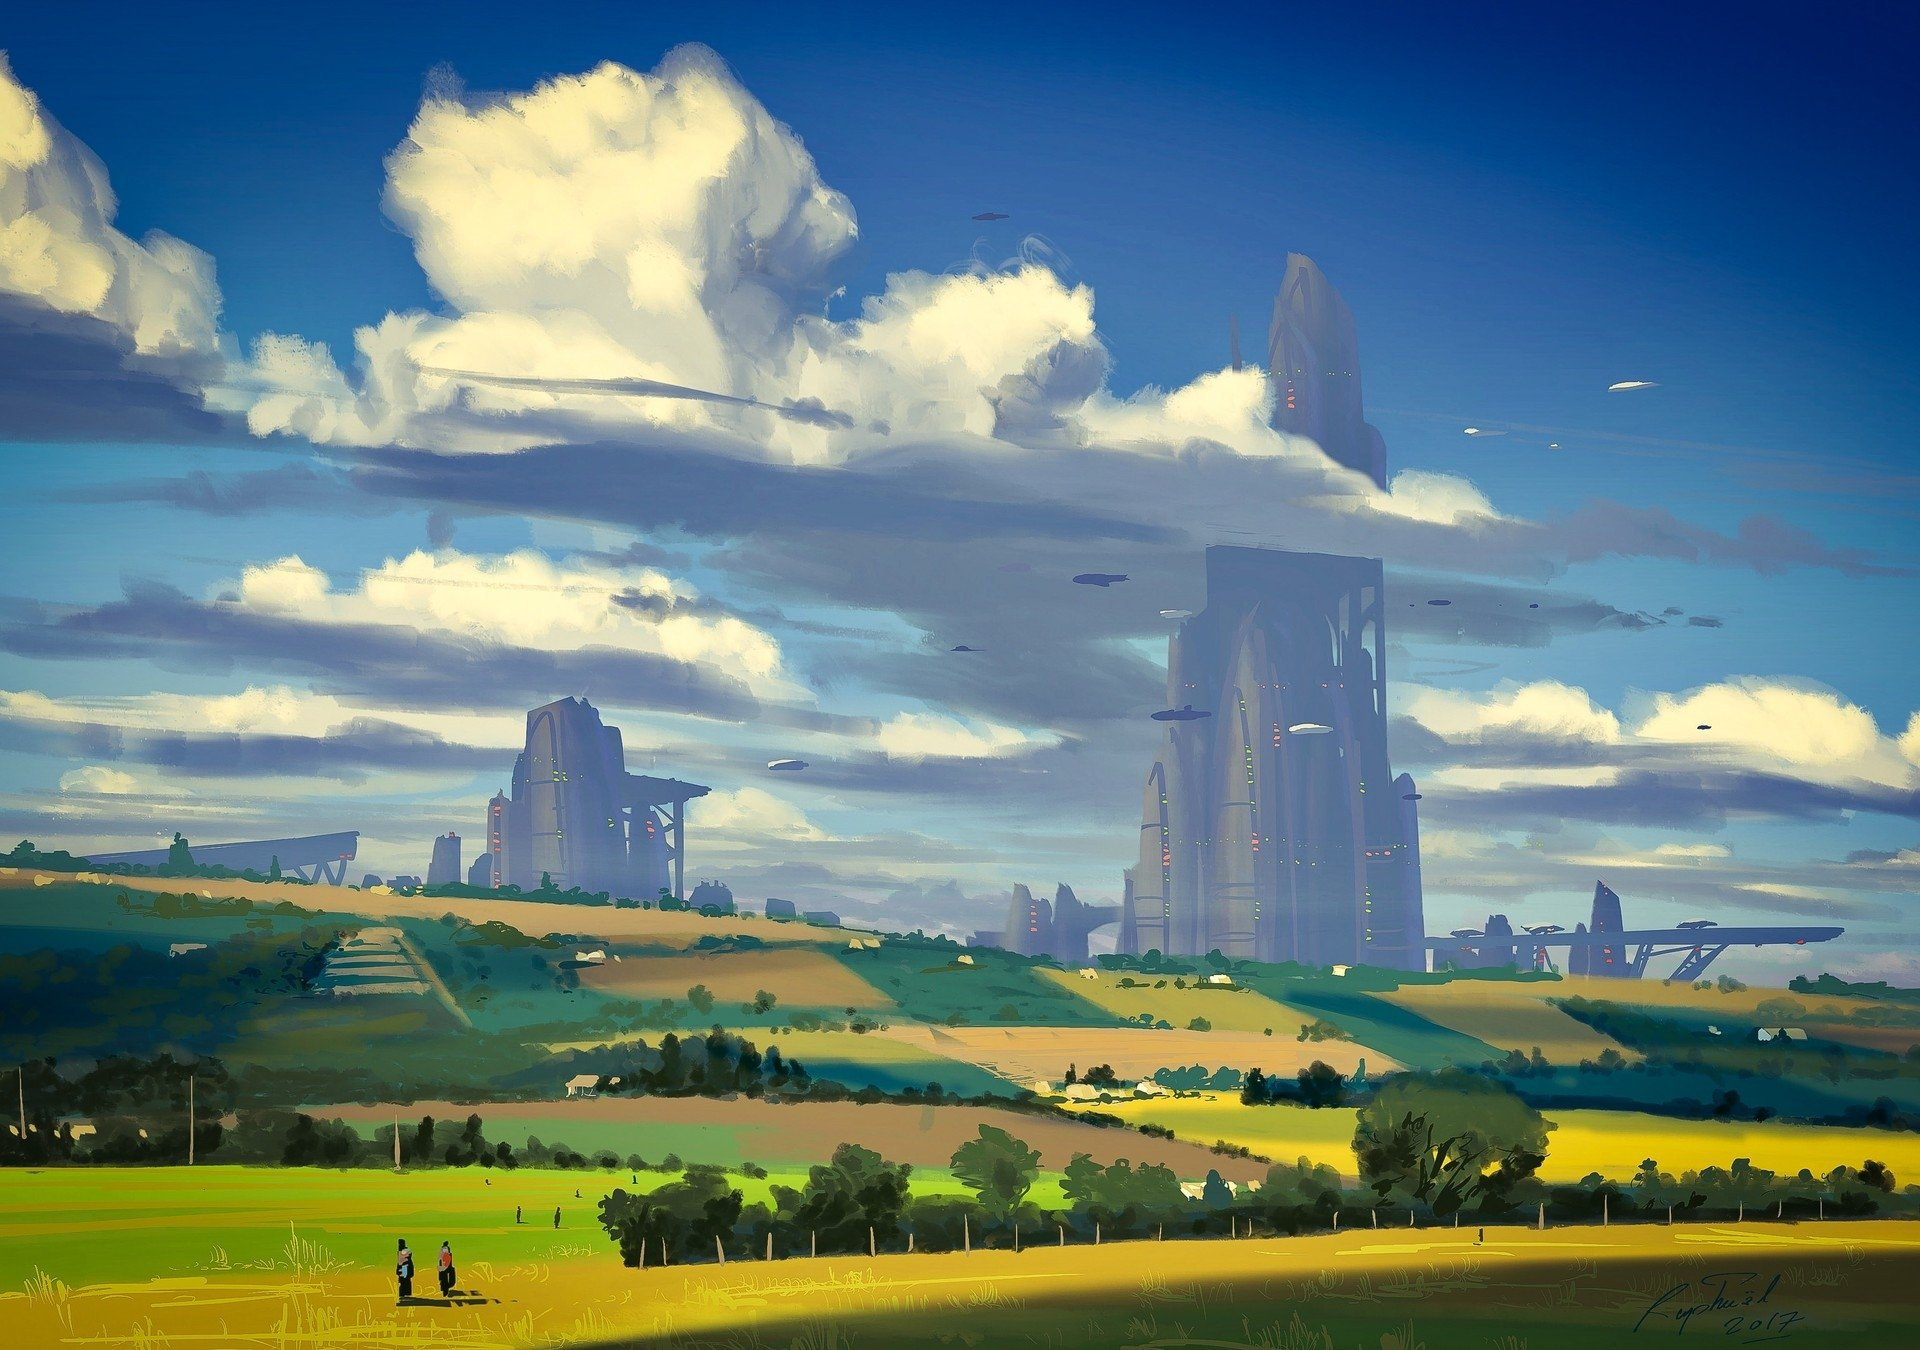 Sci Fi - Landscape  Skyscraper Sci Fi Countryside Building Tree Cloud Sky Wallpaper